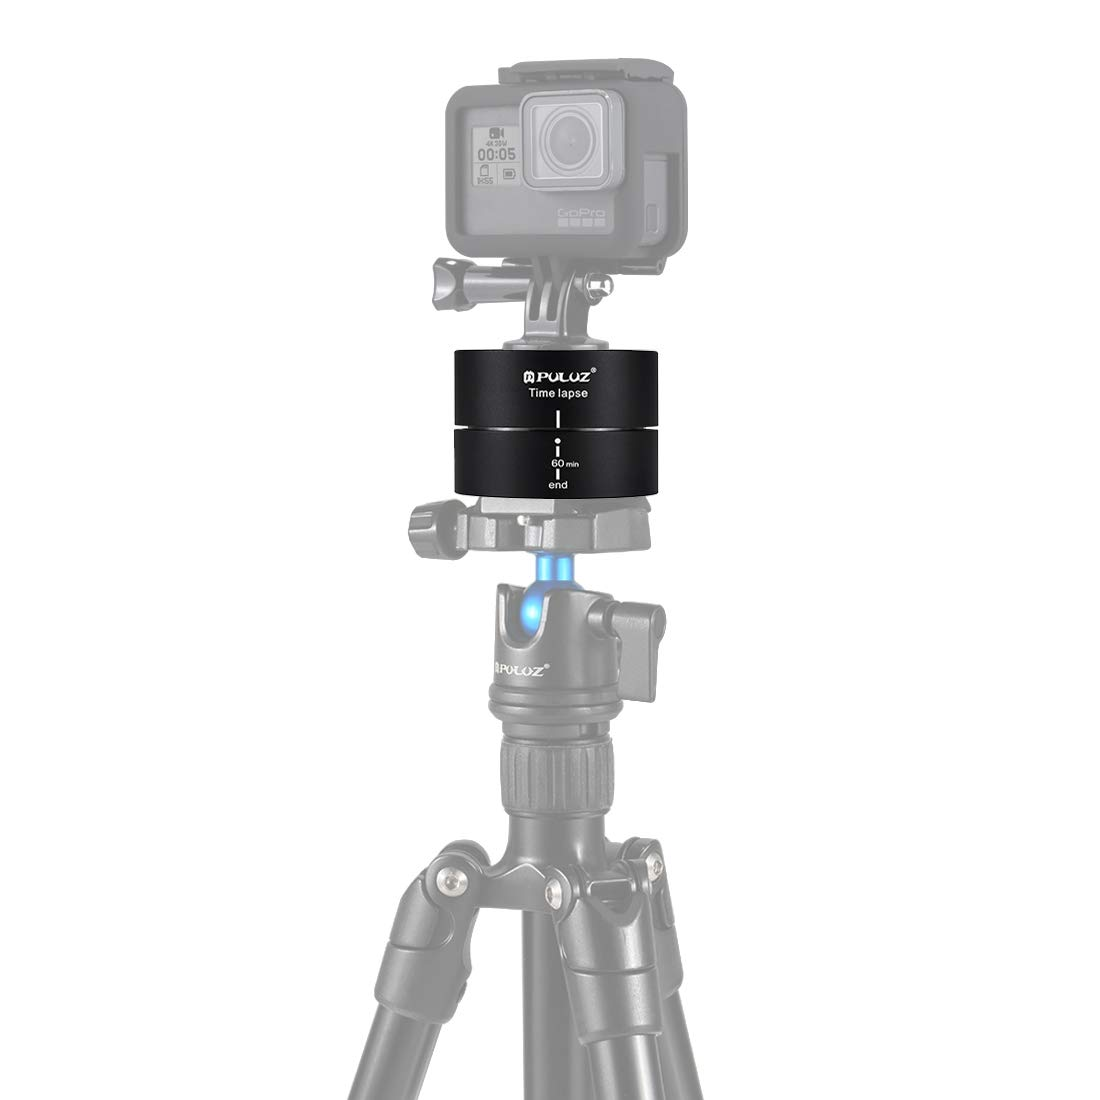 HEGUANGWEI Camera Mount 360 Degrees Panning Rotation 60 Minutes Time Lapse Stabilizer Tripod Head Adapter Photography by HEGUANGWEI